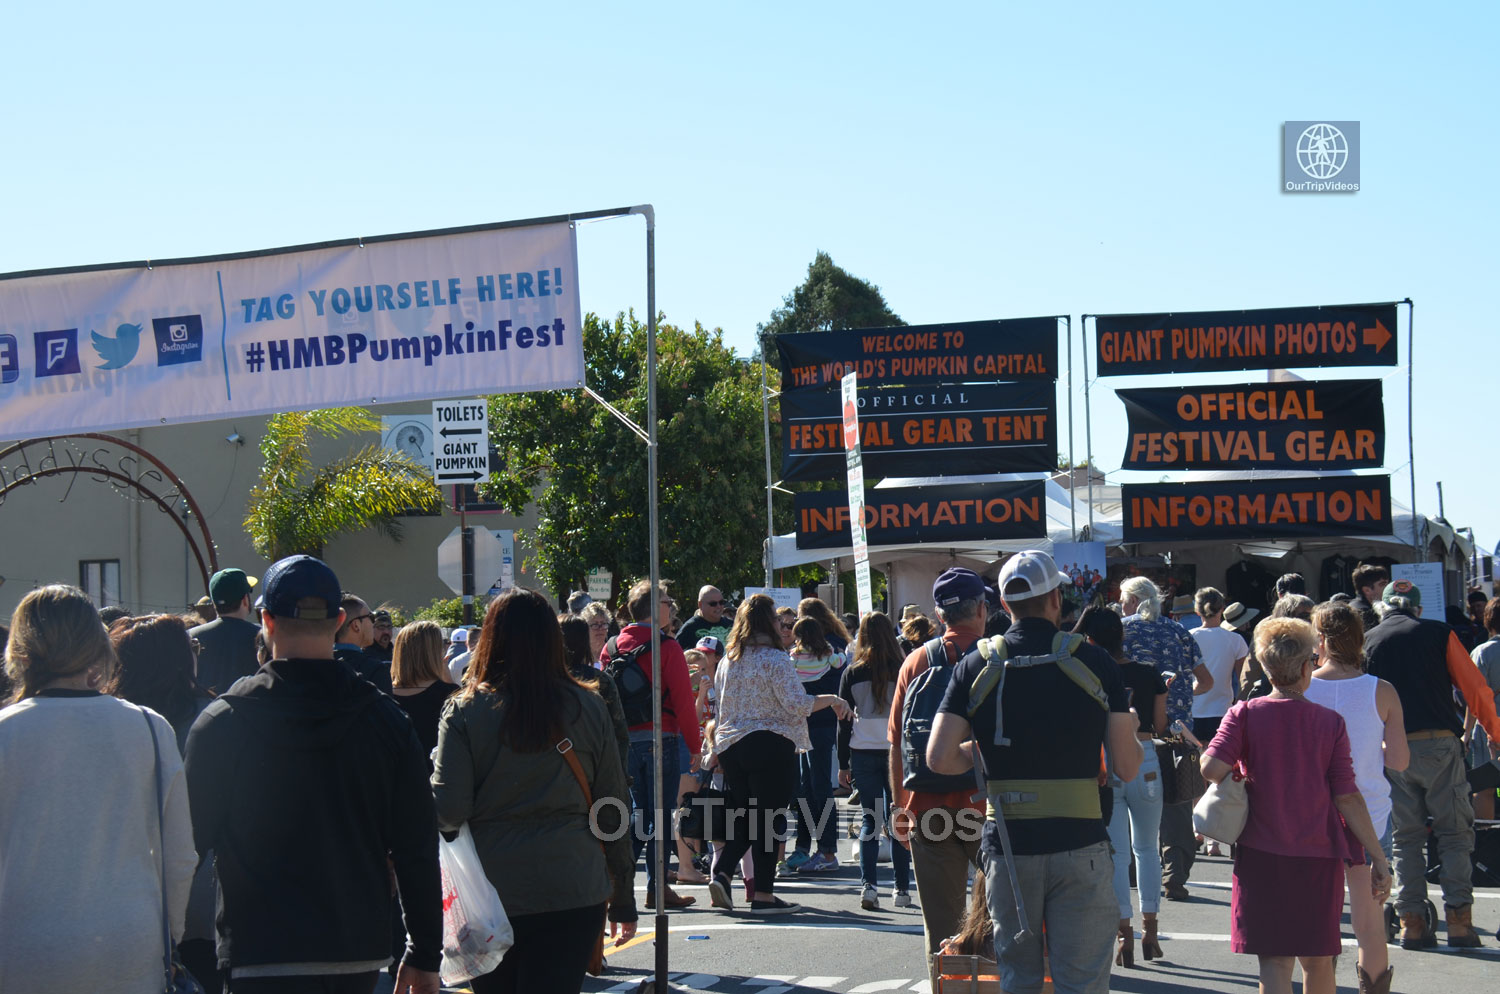 Art and Pumpkin Festival(Parade), Half Moon Bay, CA, USA - Picture 16 of 25